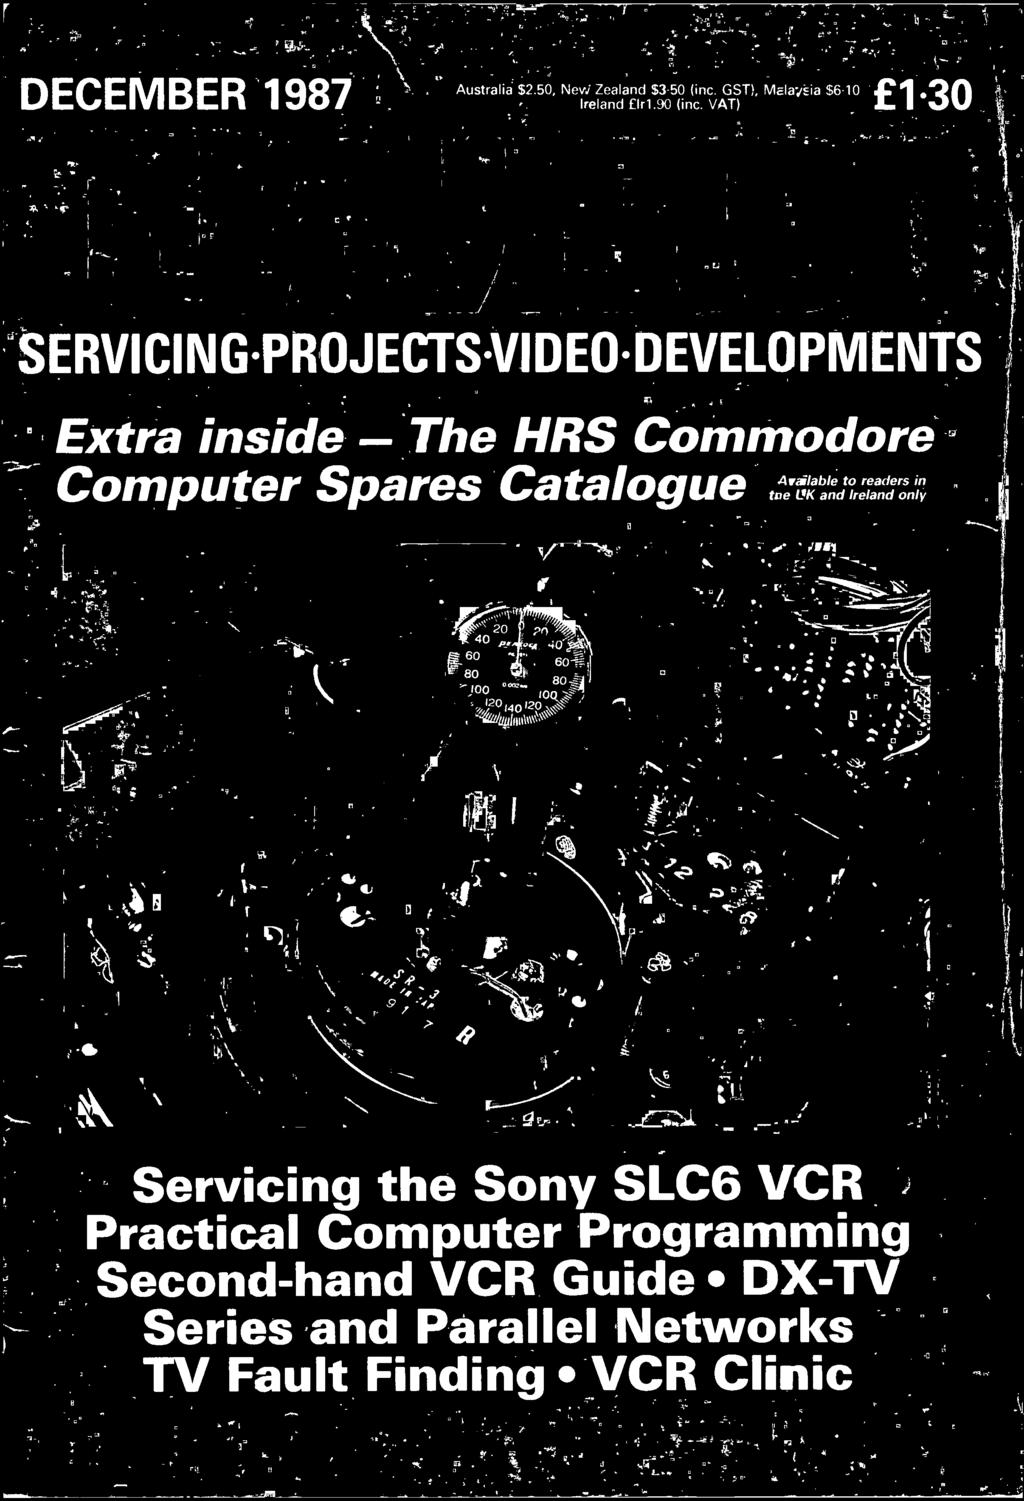 Tv Fault Finding Vcr Clinic Pdf Power Supply Cord Australian Au110p Straight Plug Standard Stripped And Ireland Only Servicing The Sony Slc6 Practical Computer